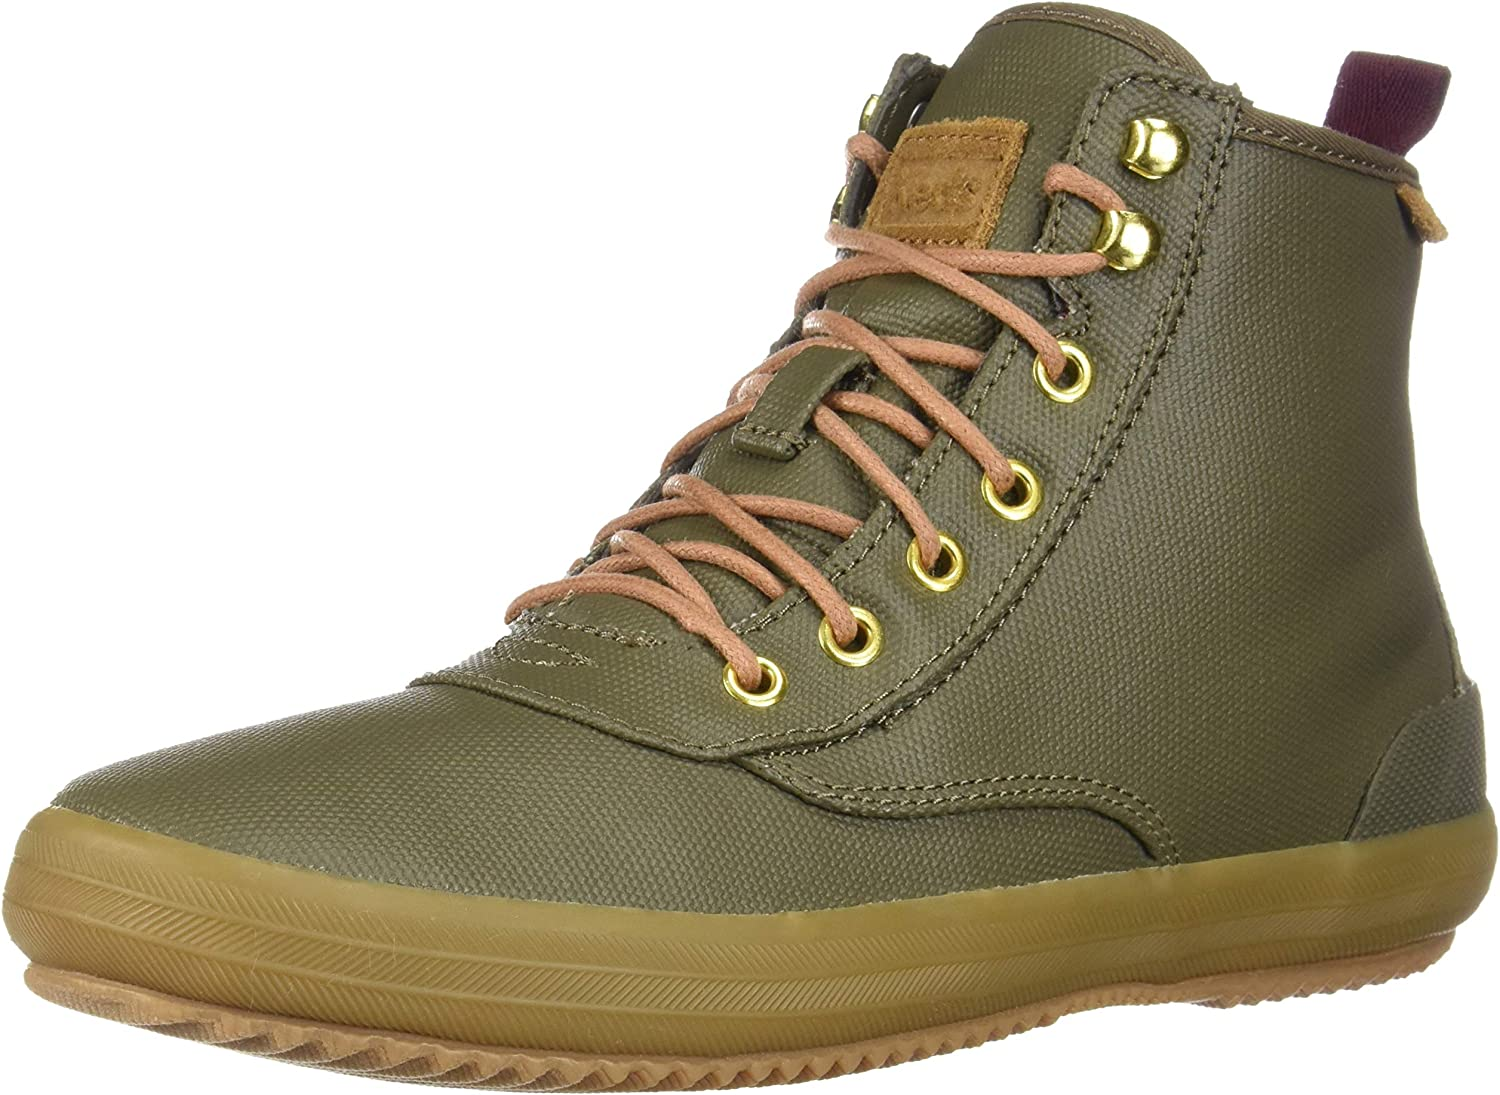 Keds Scout Boot Splash Canvas Wax Olive